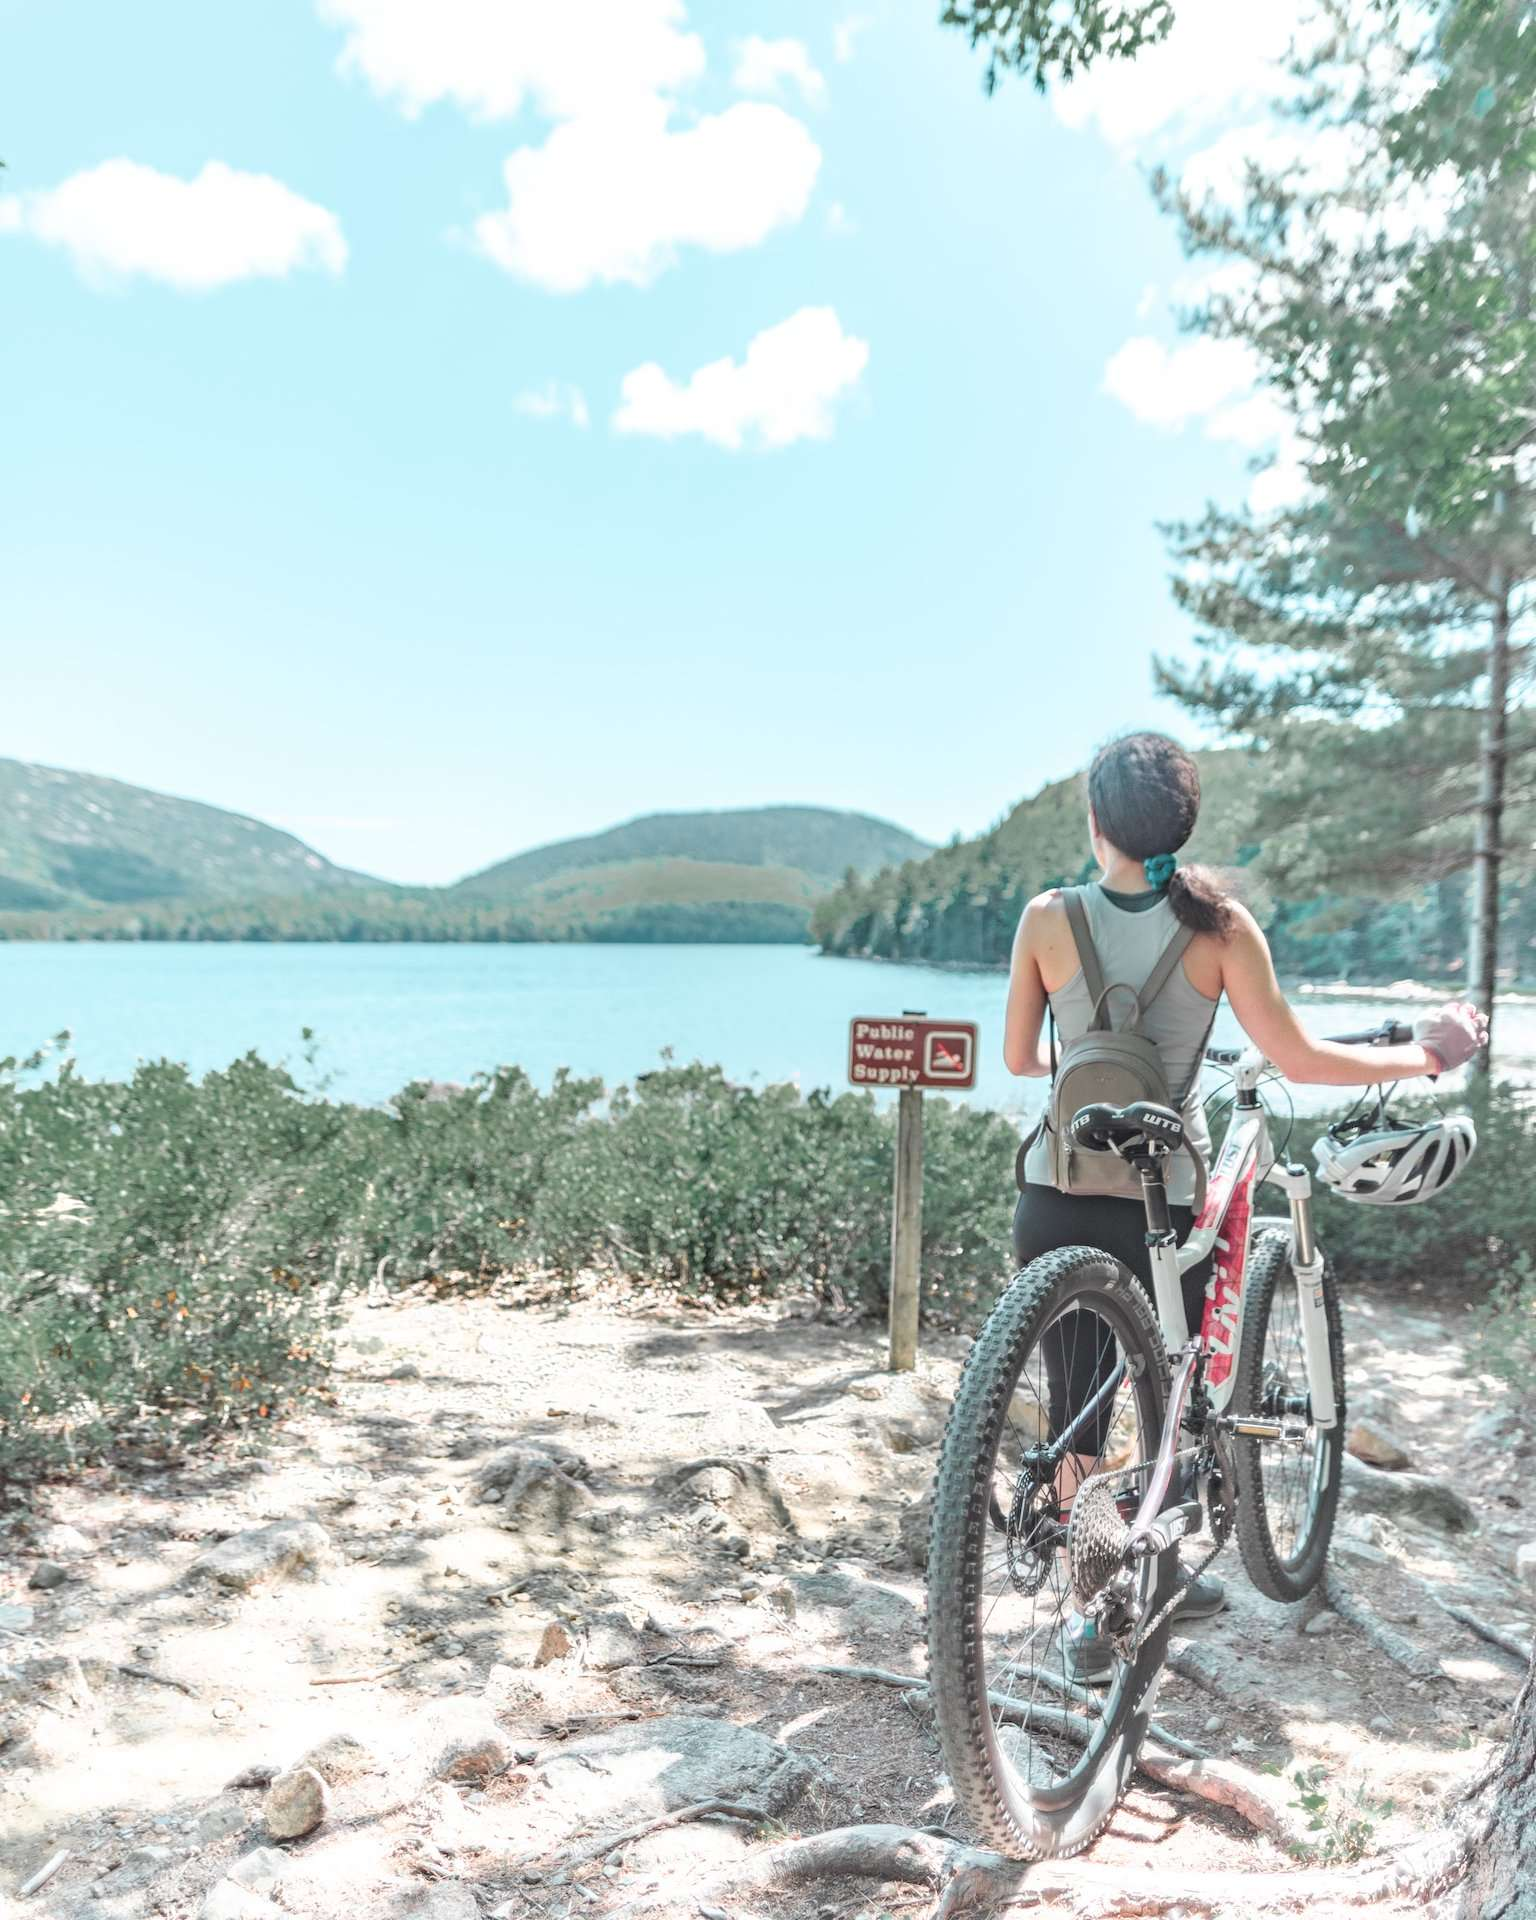 biking at Acadia National Park